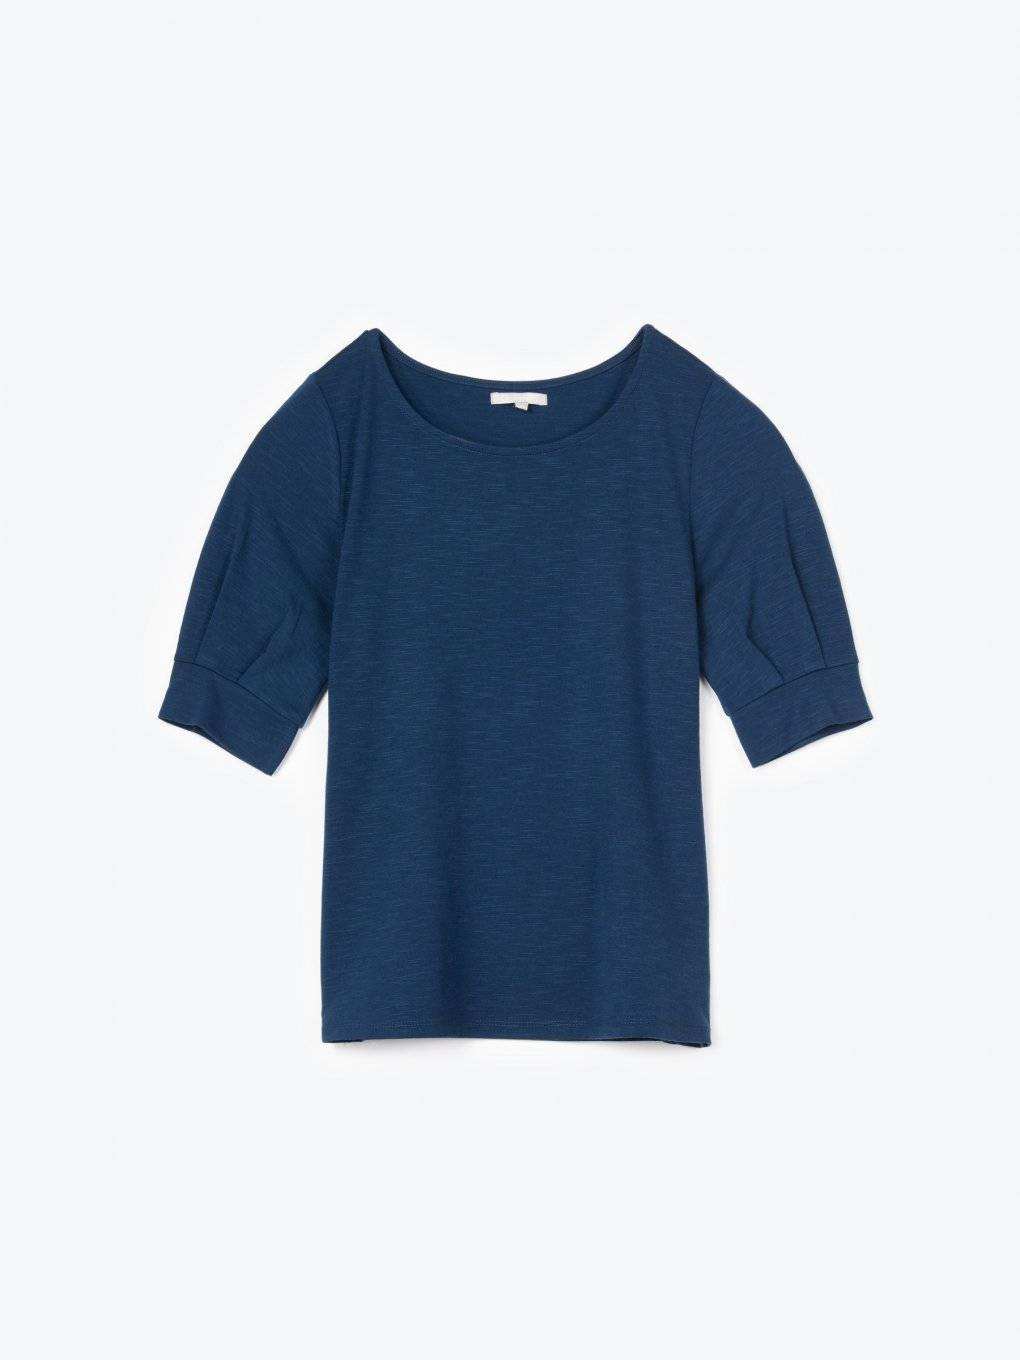 T-shirt with puff sleeves